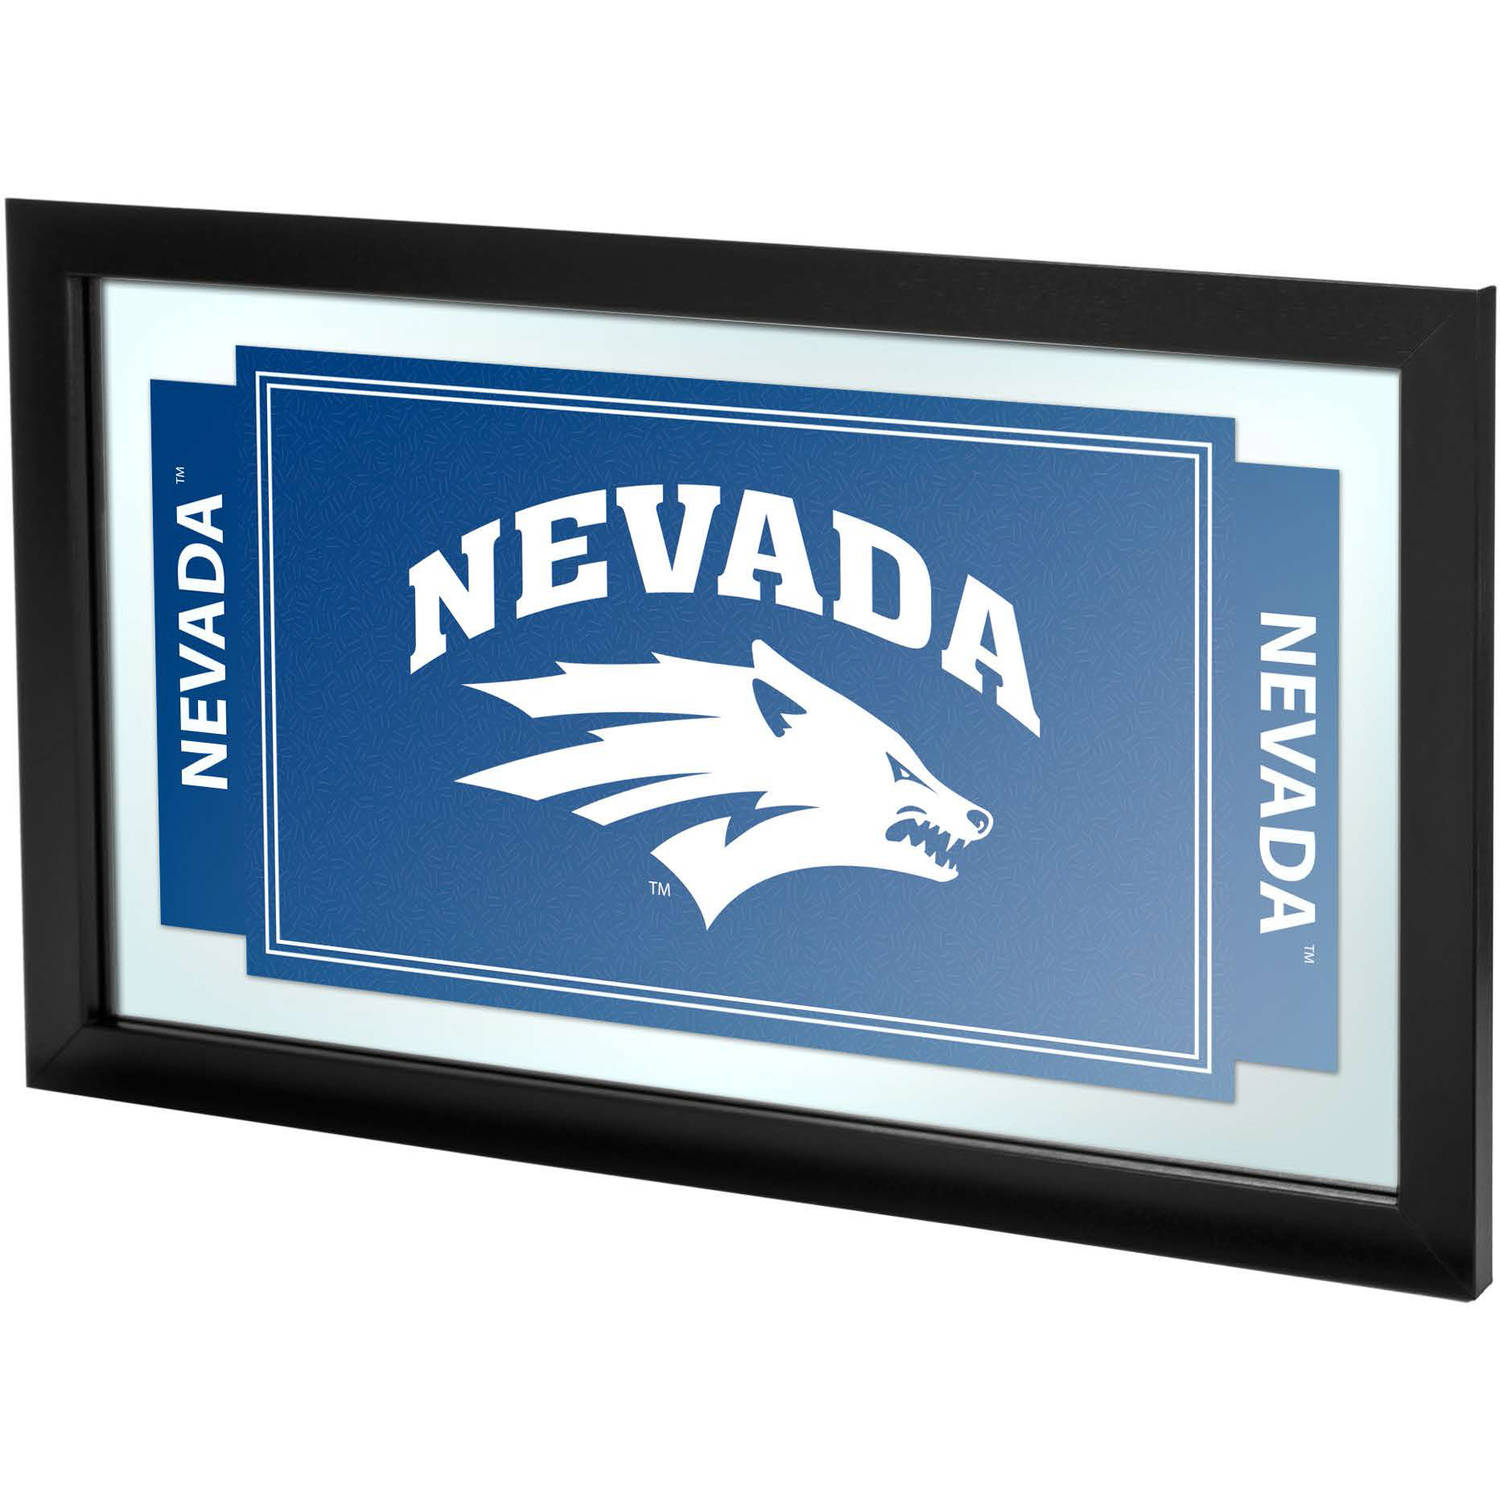 University of Nevada Framed Logo Mirror